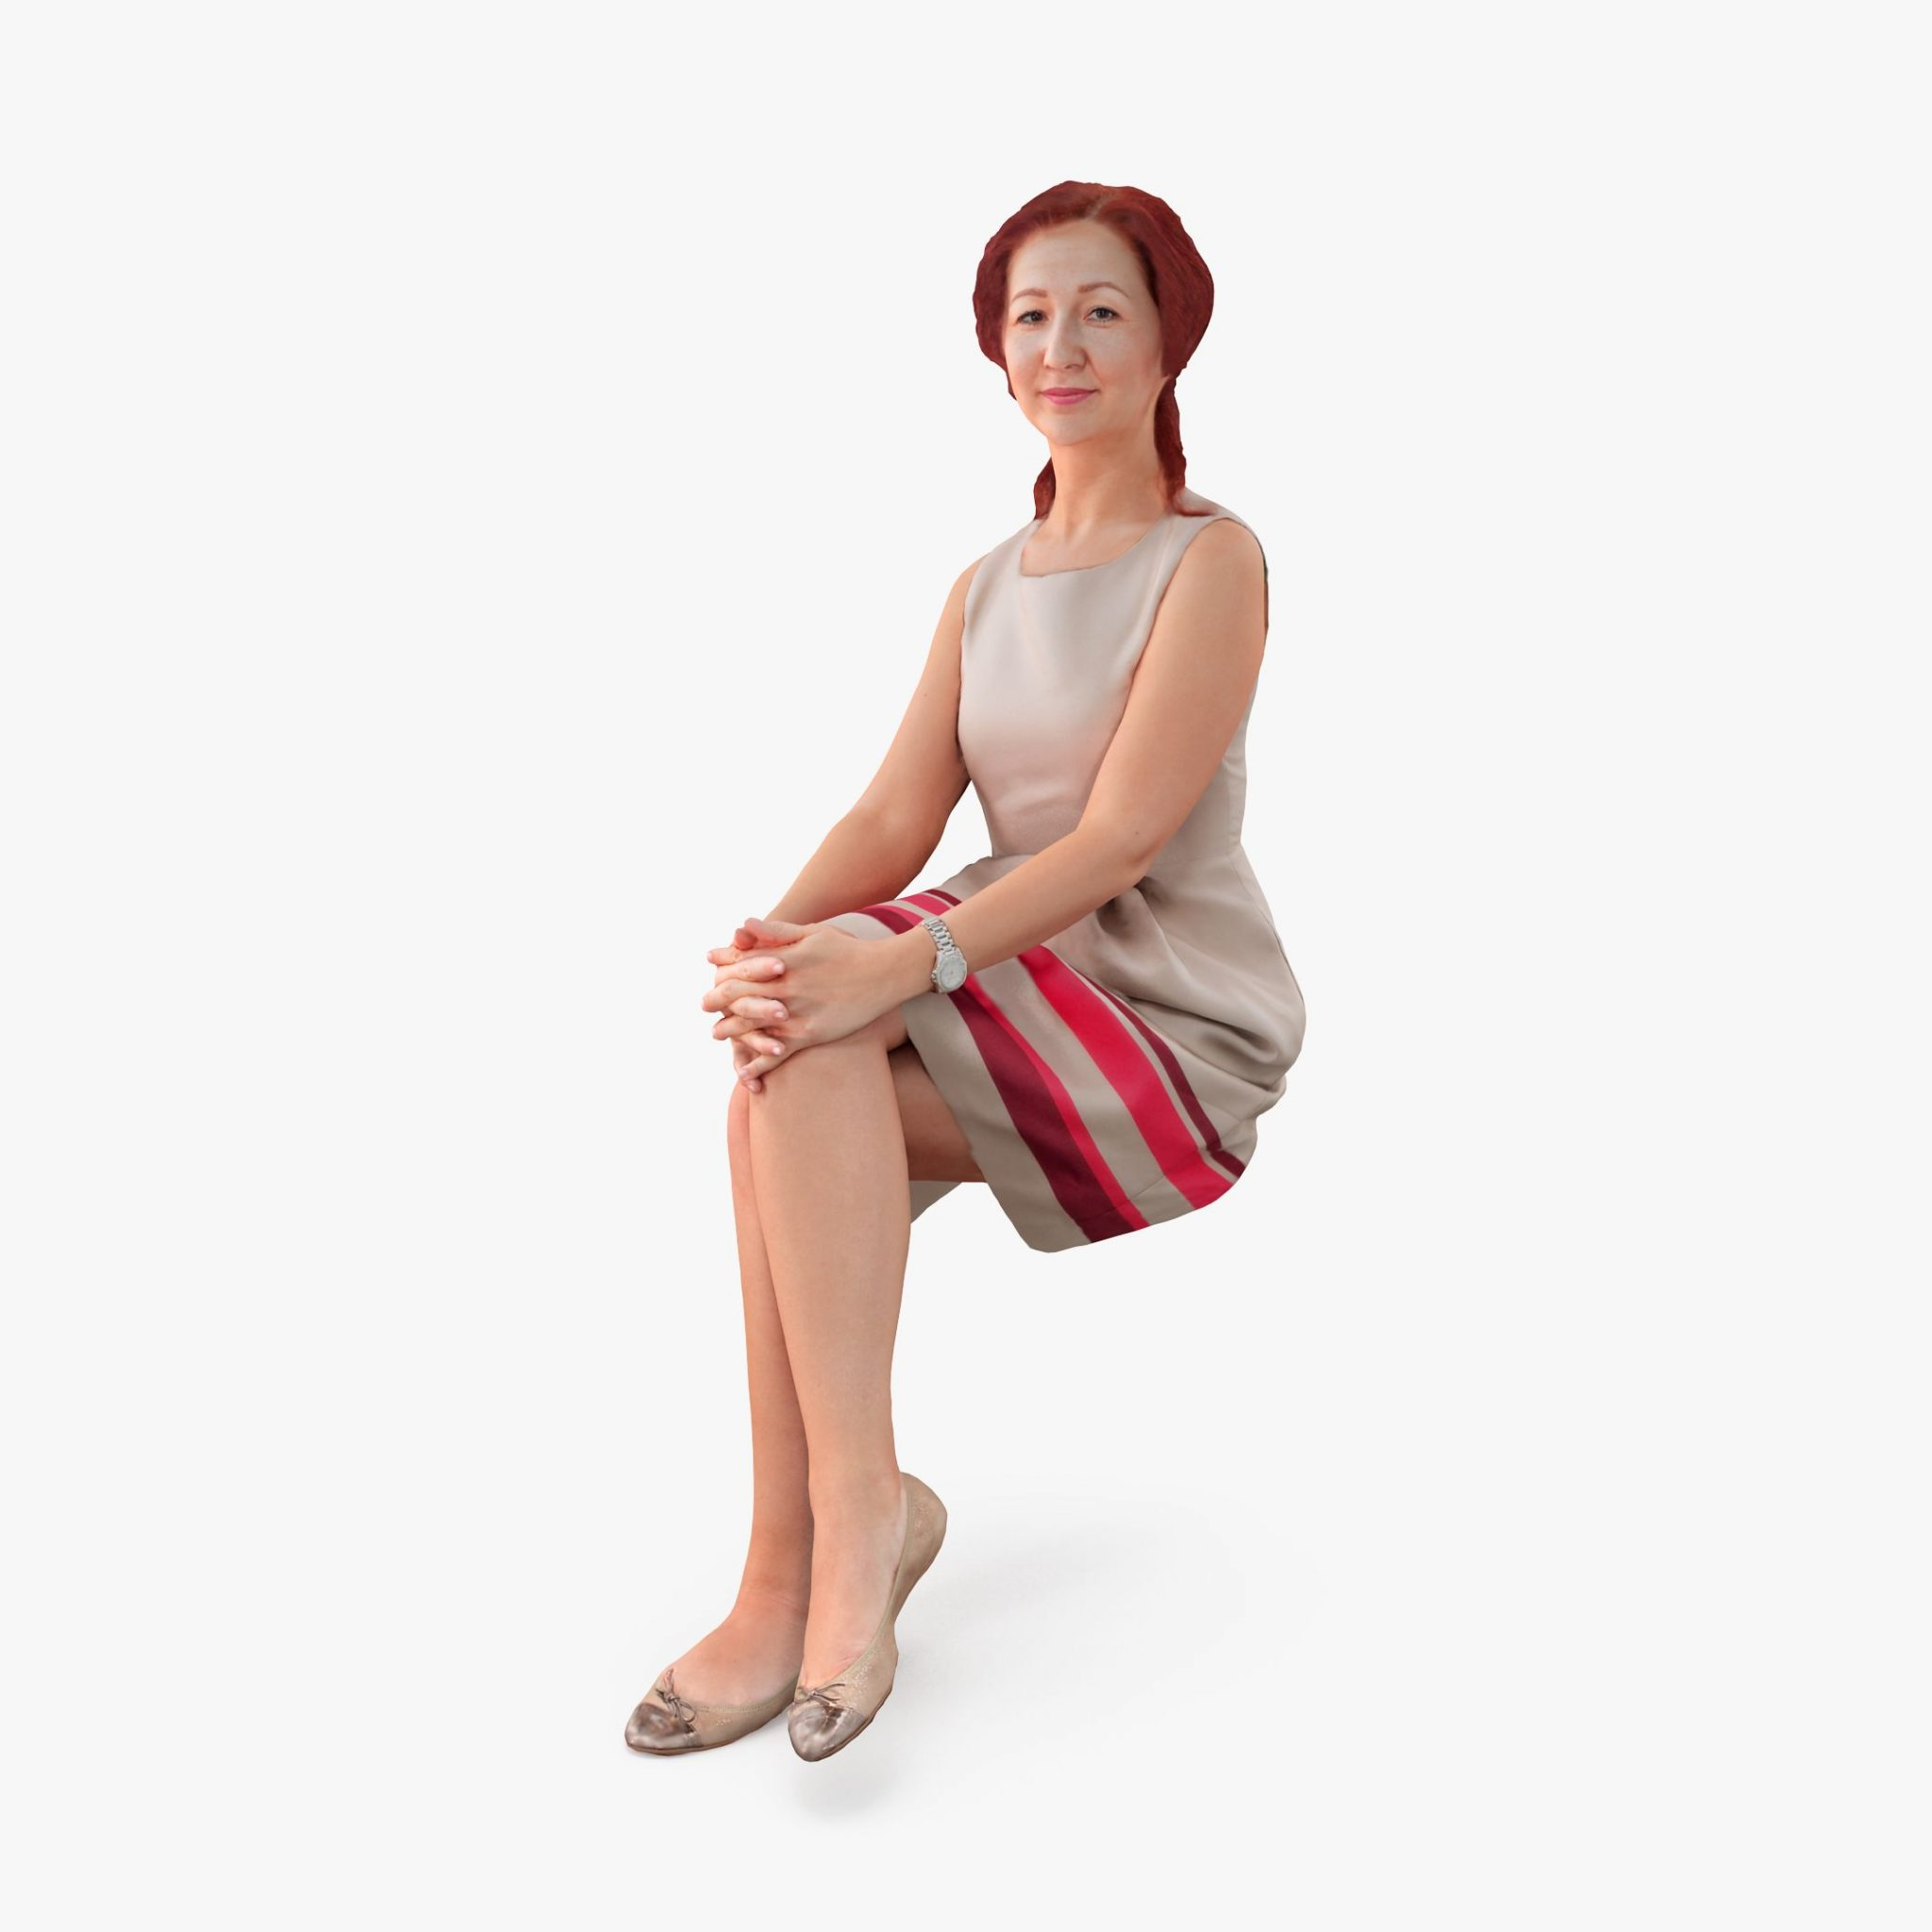 City Woman Sitting 3D Model | 3DTree Scanning Studio